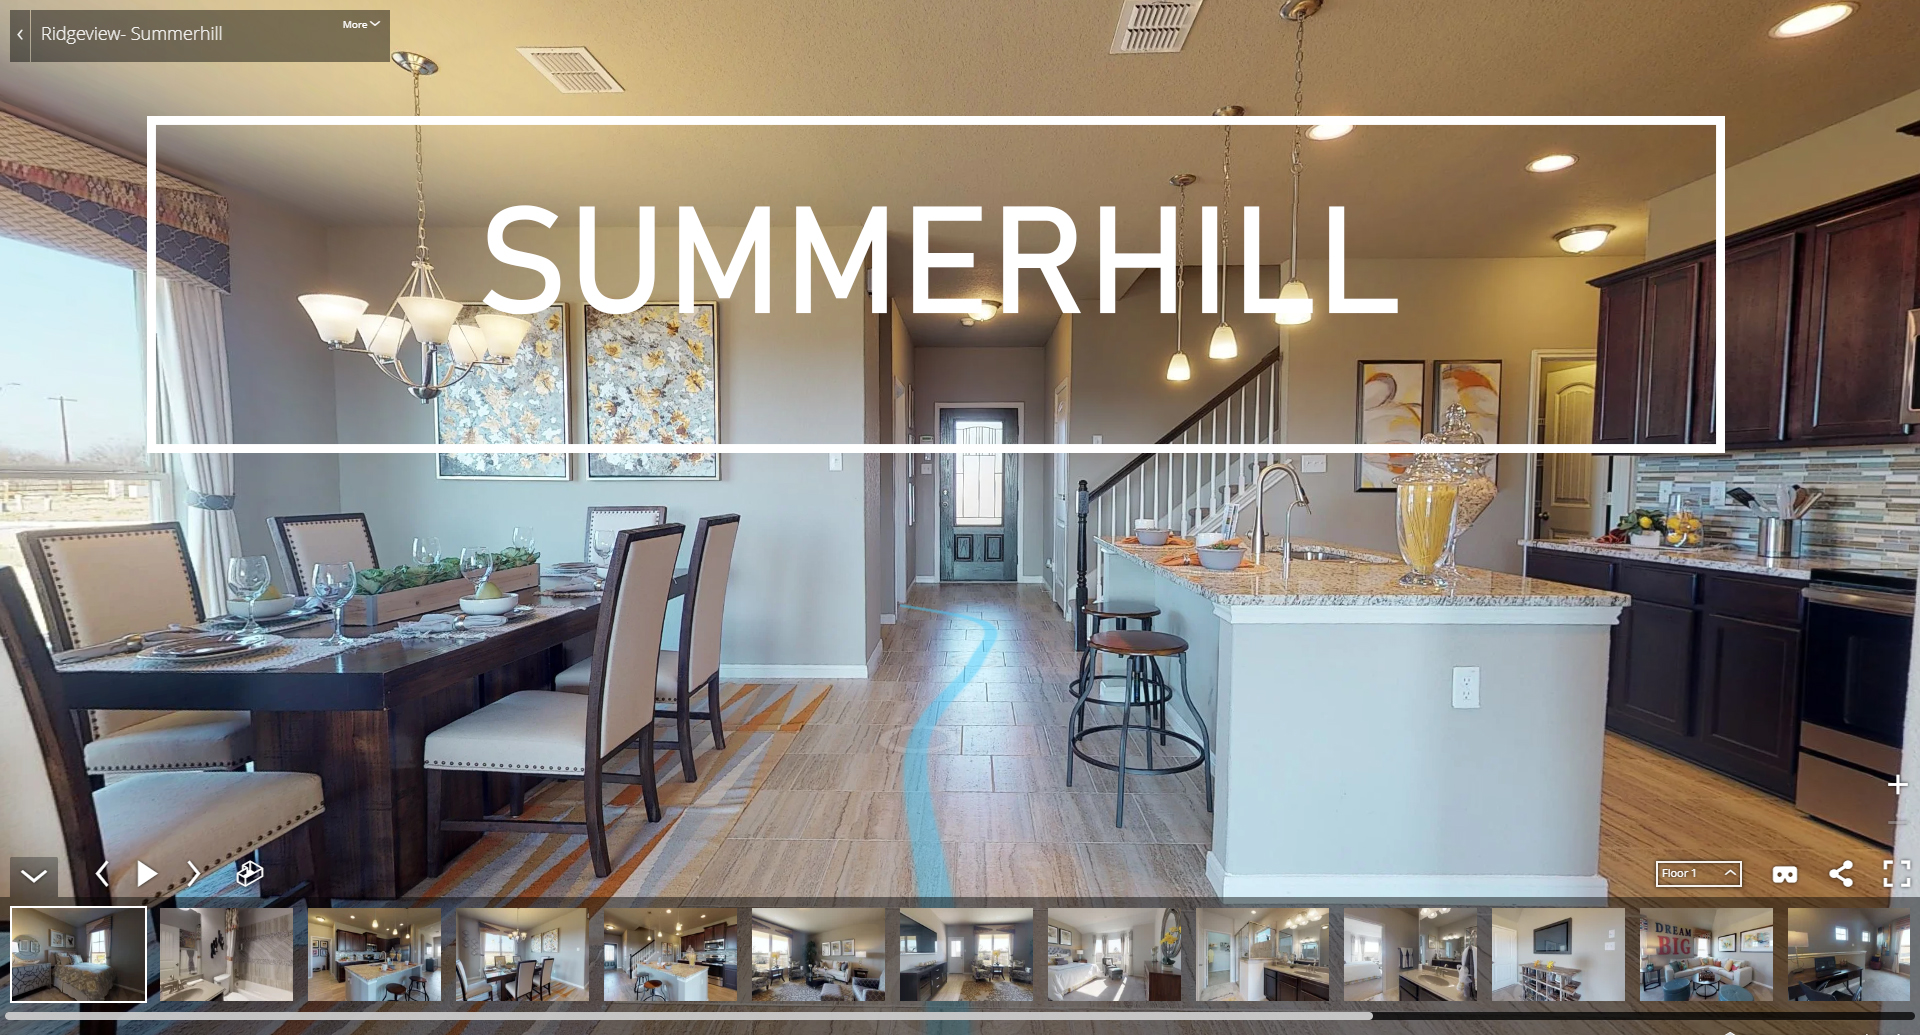 Summerhill Tour Video